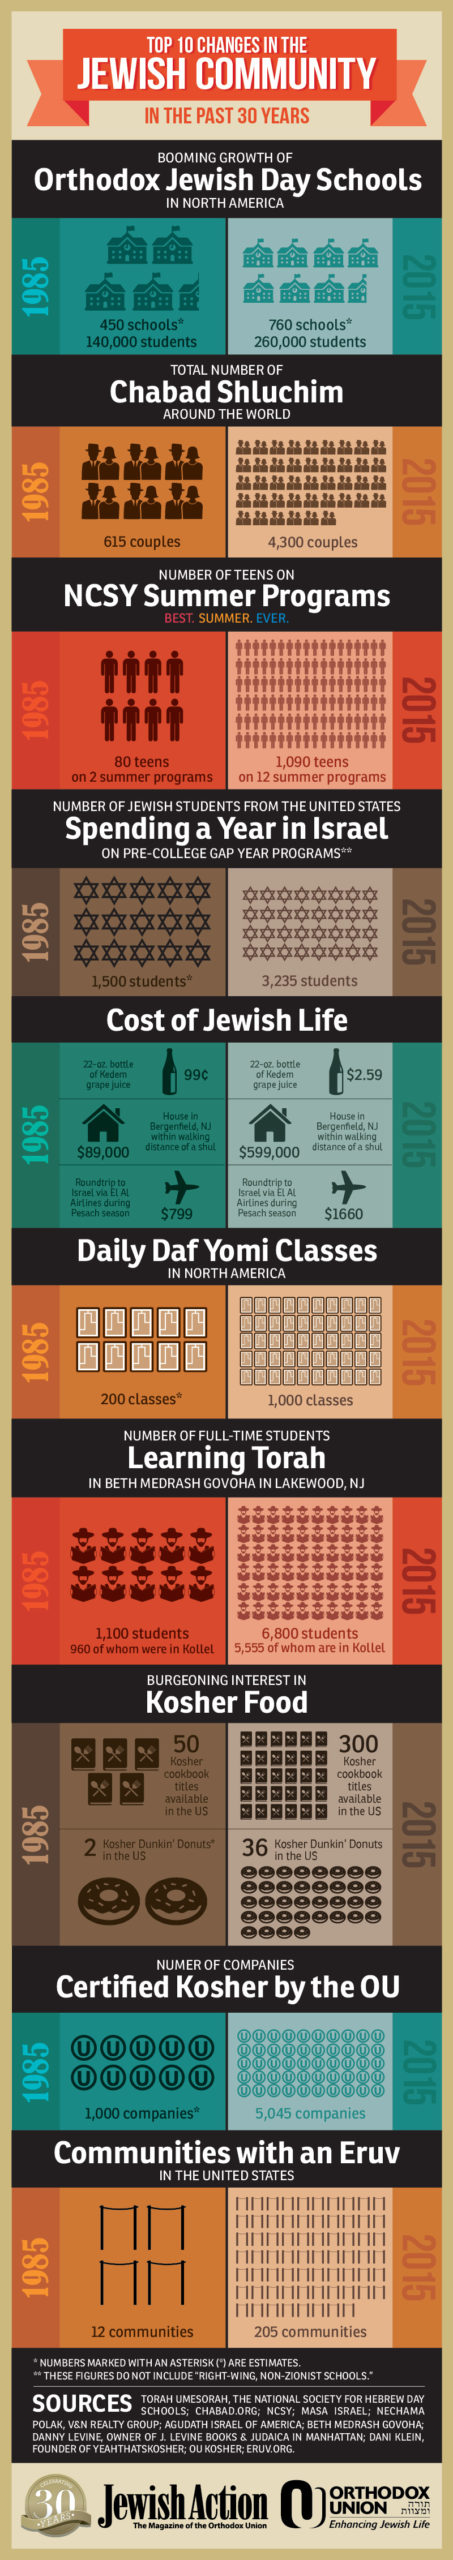 30-Years-Jewish-Community-Then-and-Now-infographic-for-web